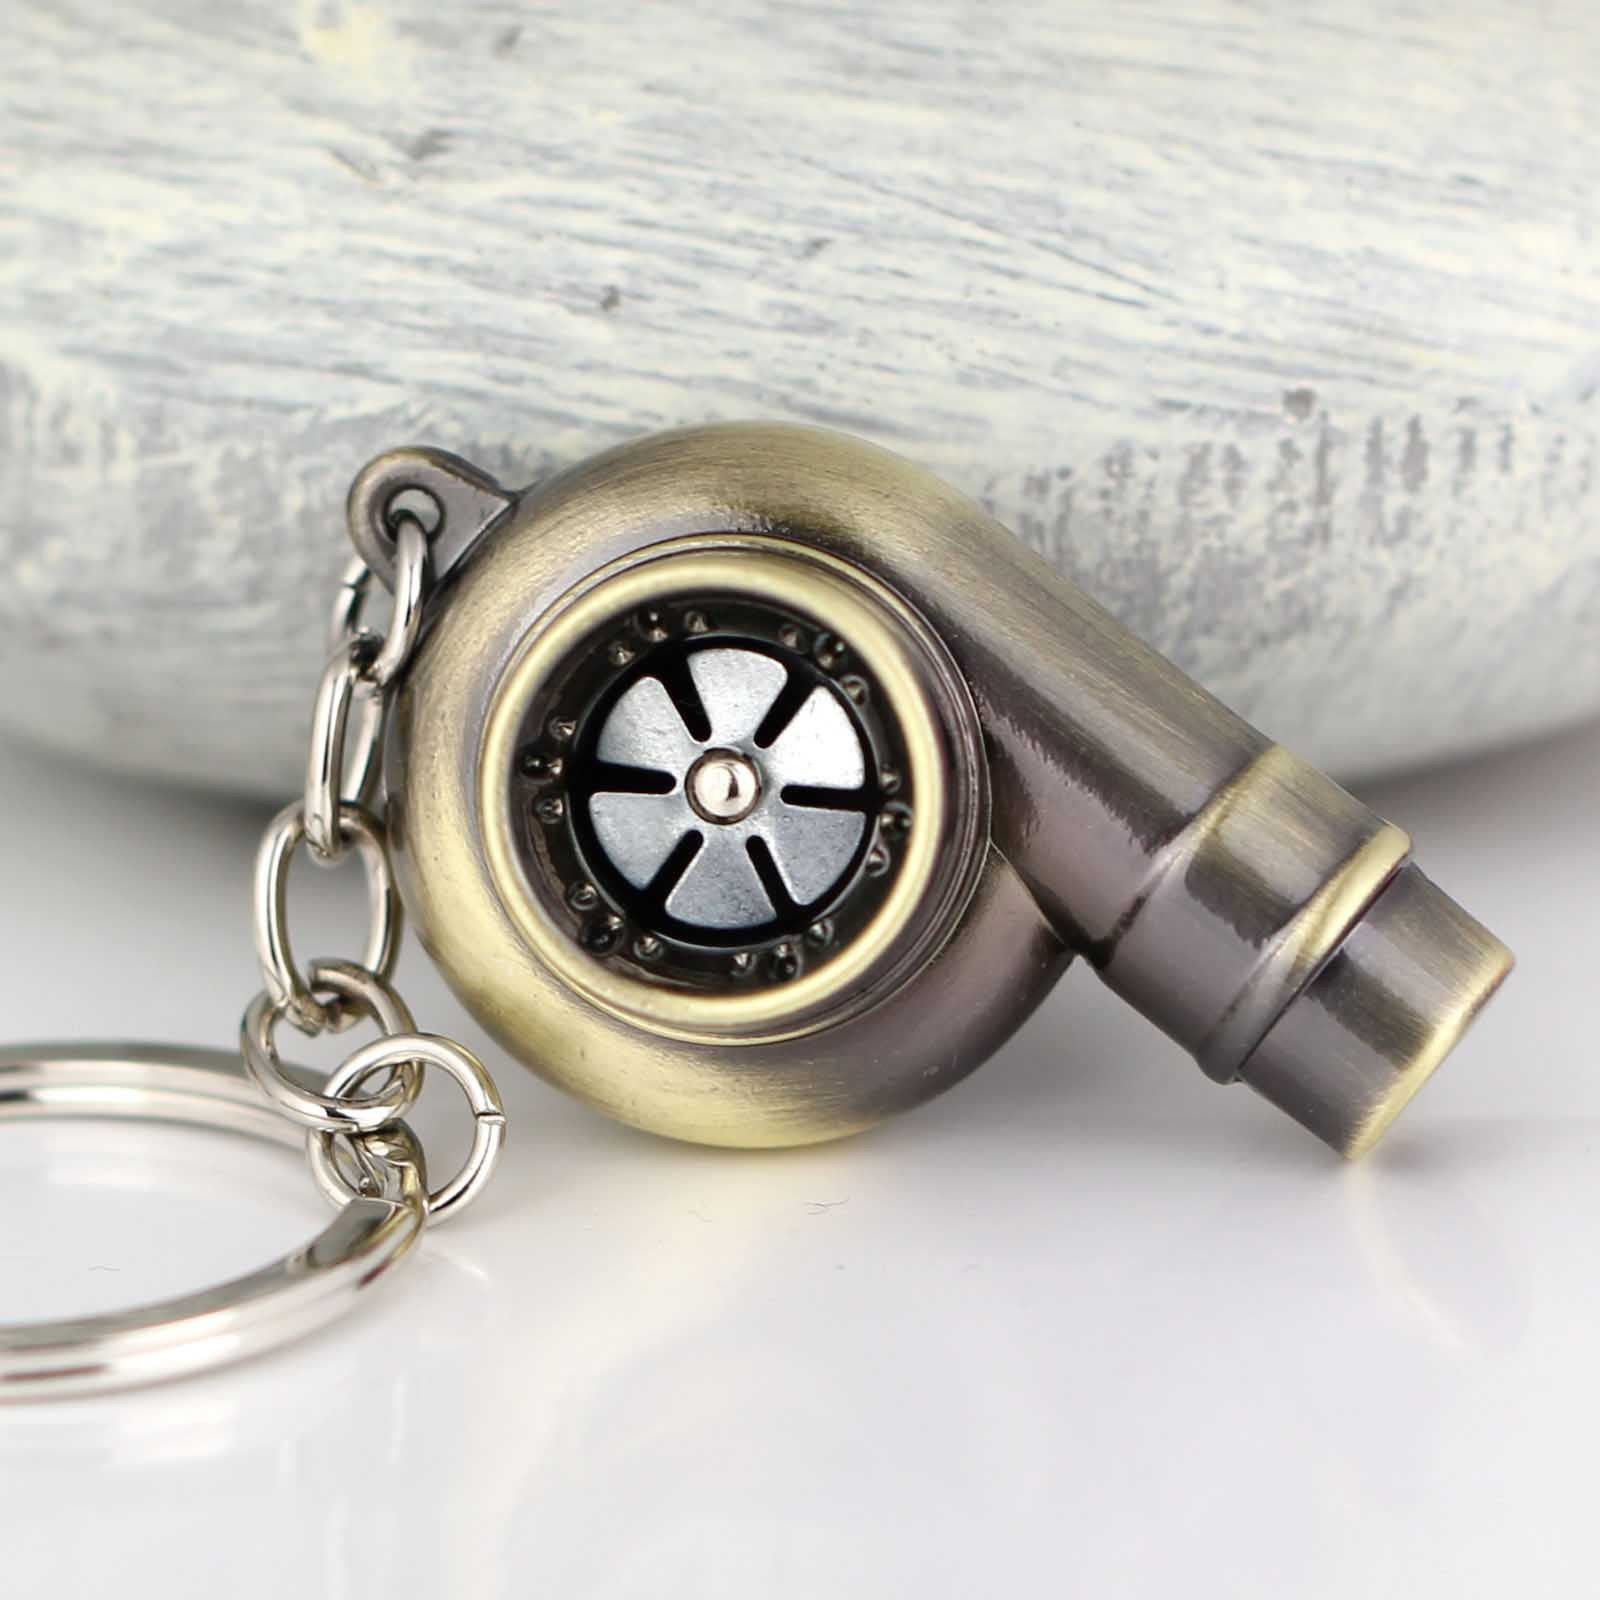 MAZIMARK--Real Whistle Sound Turbo Keychain Spinning Turbine Key Chain Ring Keyring Keyfob (BRONZE)